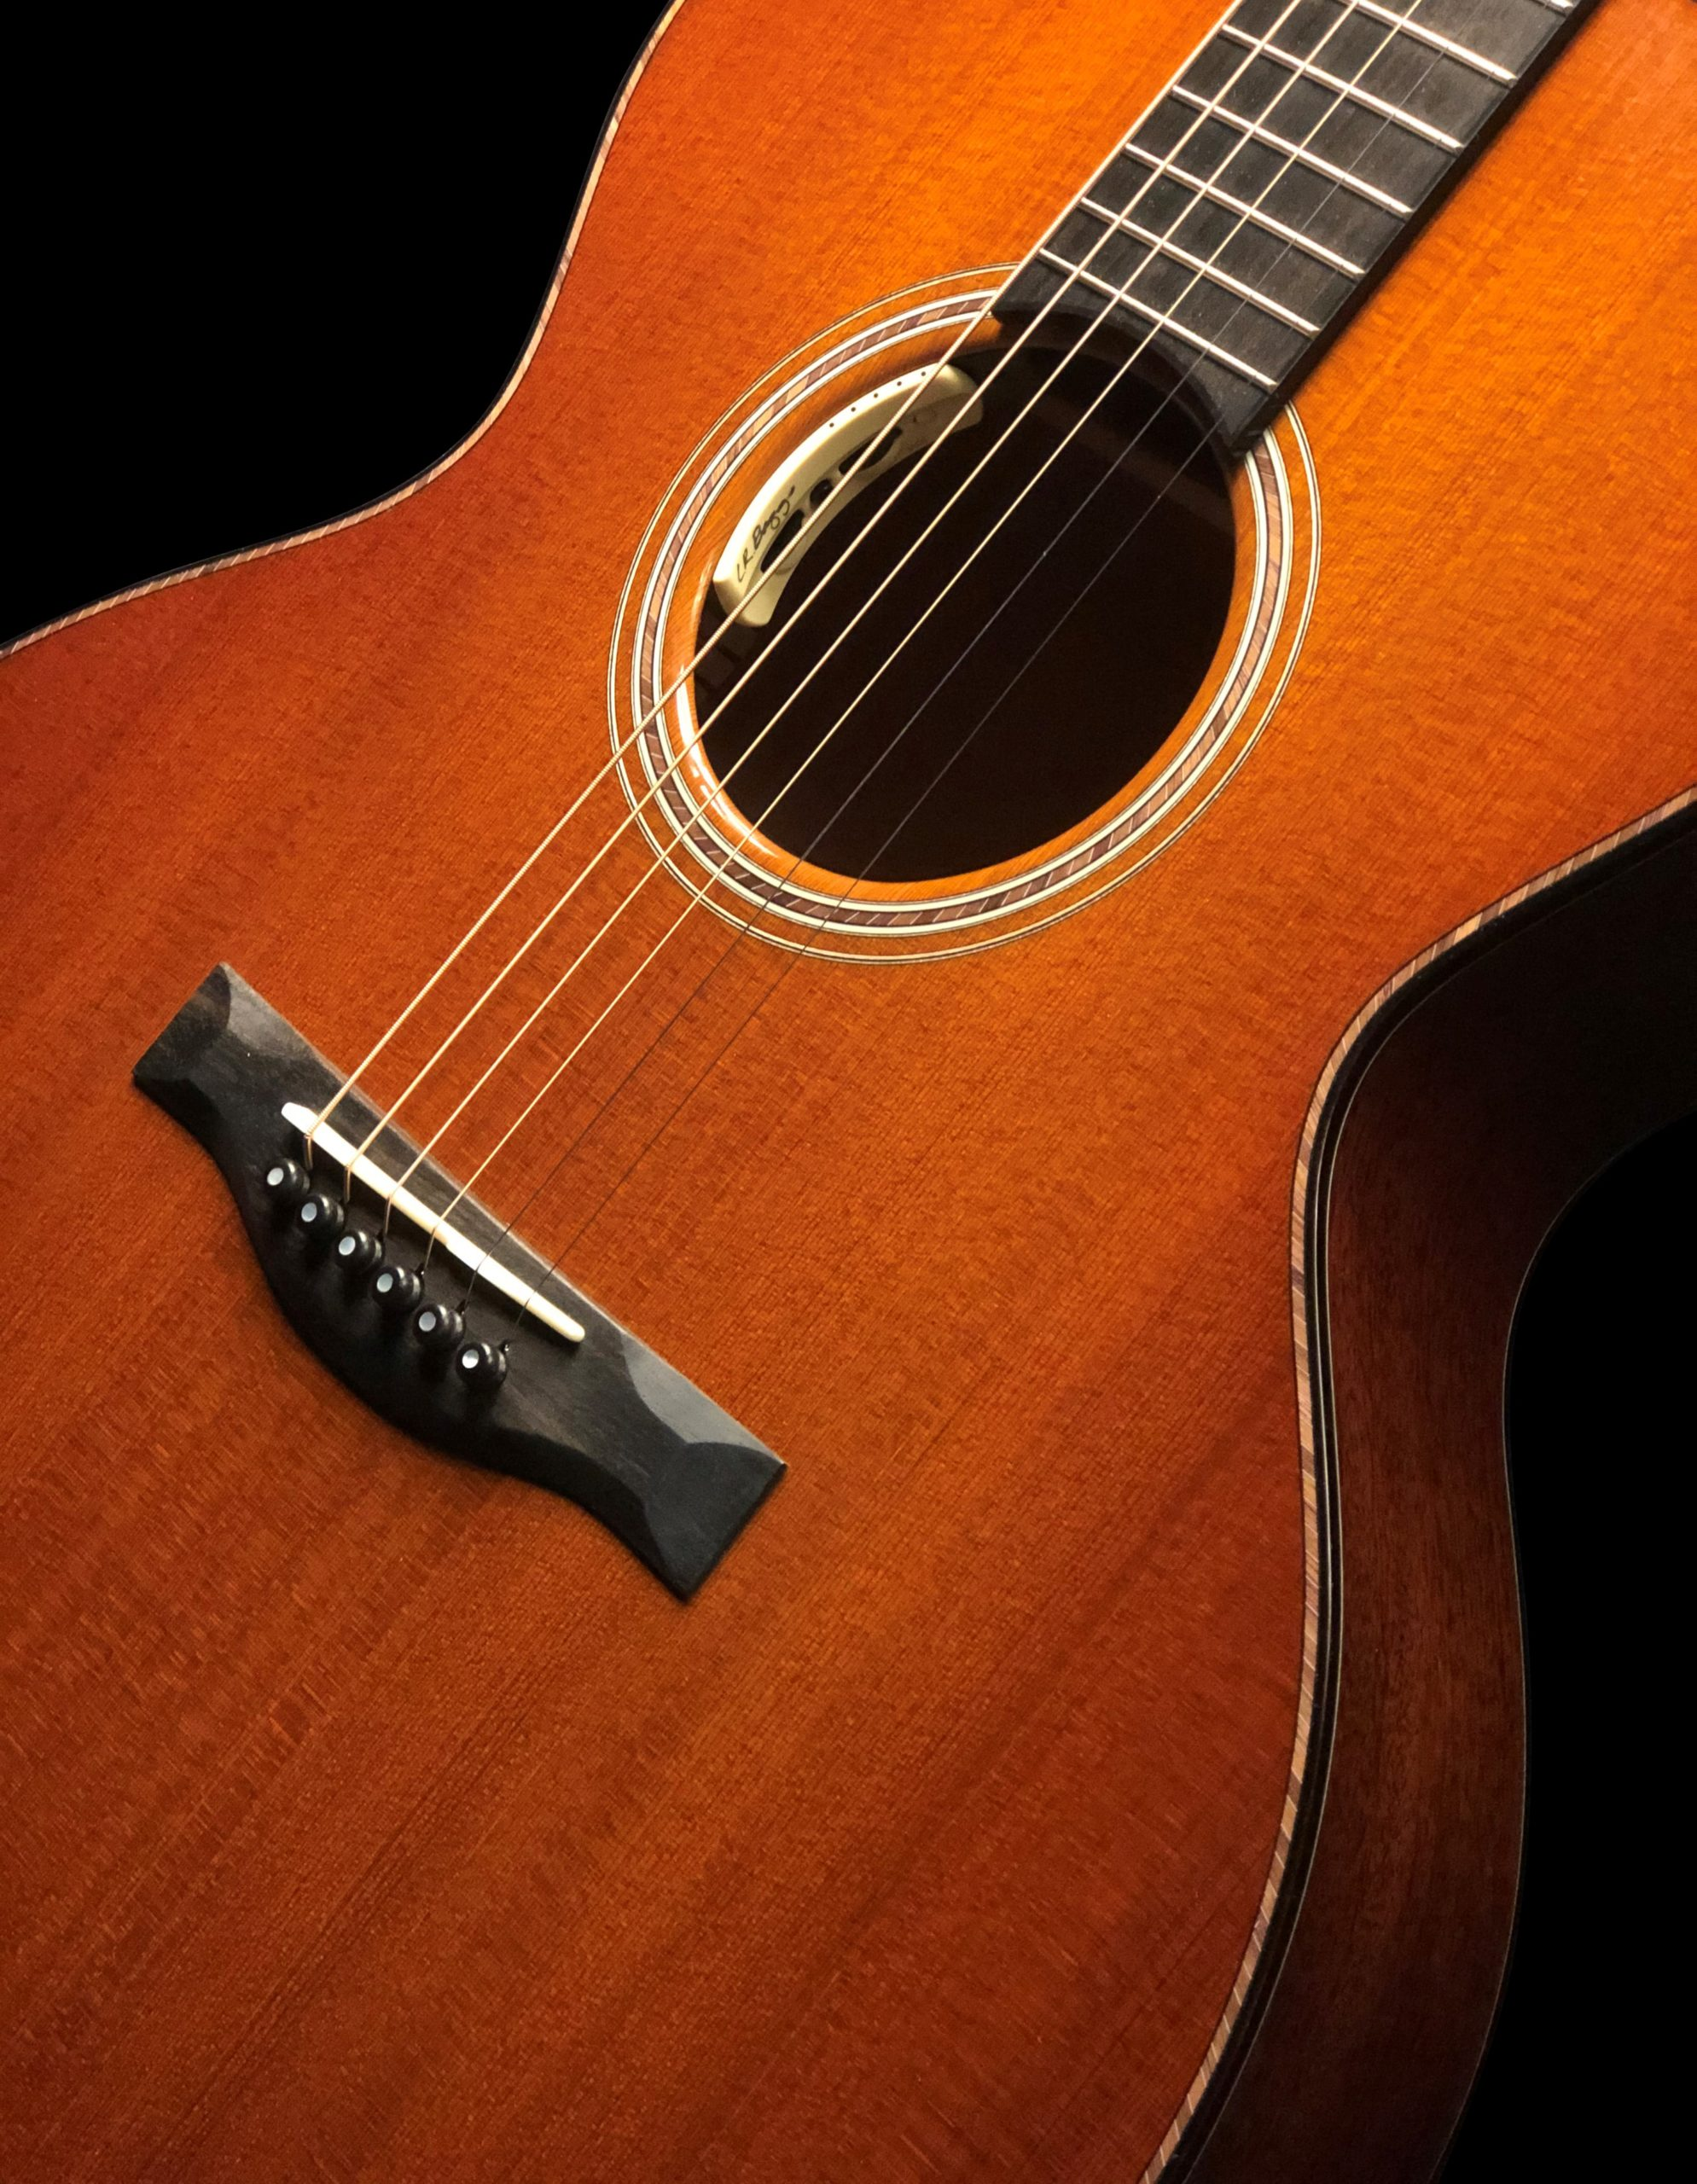 Legends in Lutherie (Limited Edition Series)